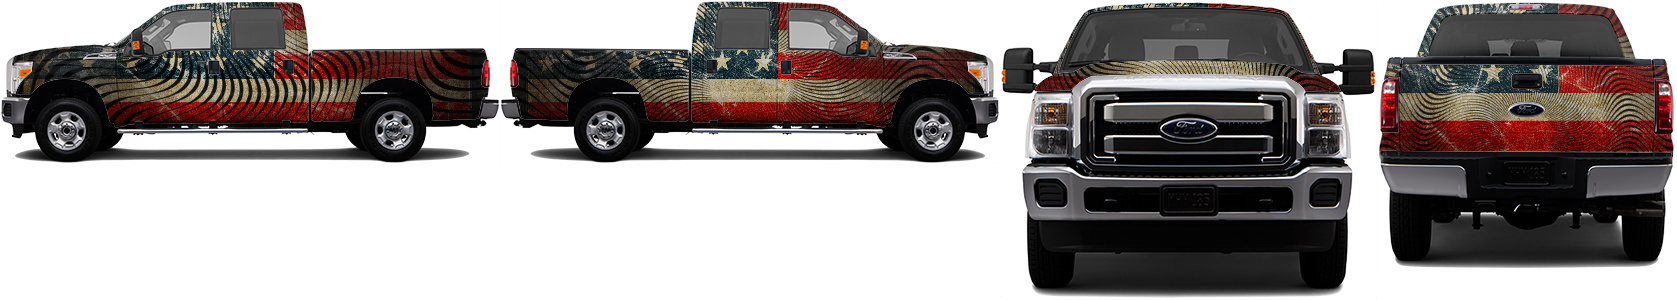 truck wrap custom design 32207 by new designer 34419 design your own truck wrap custom. Black Bedroom Furniture Sets. Home Design Ideas